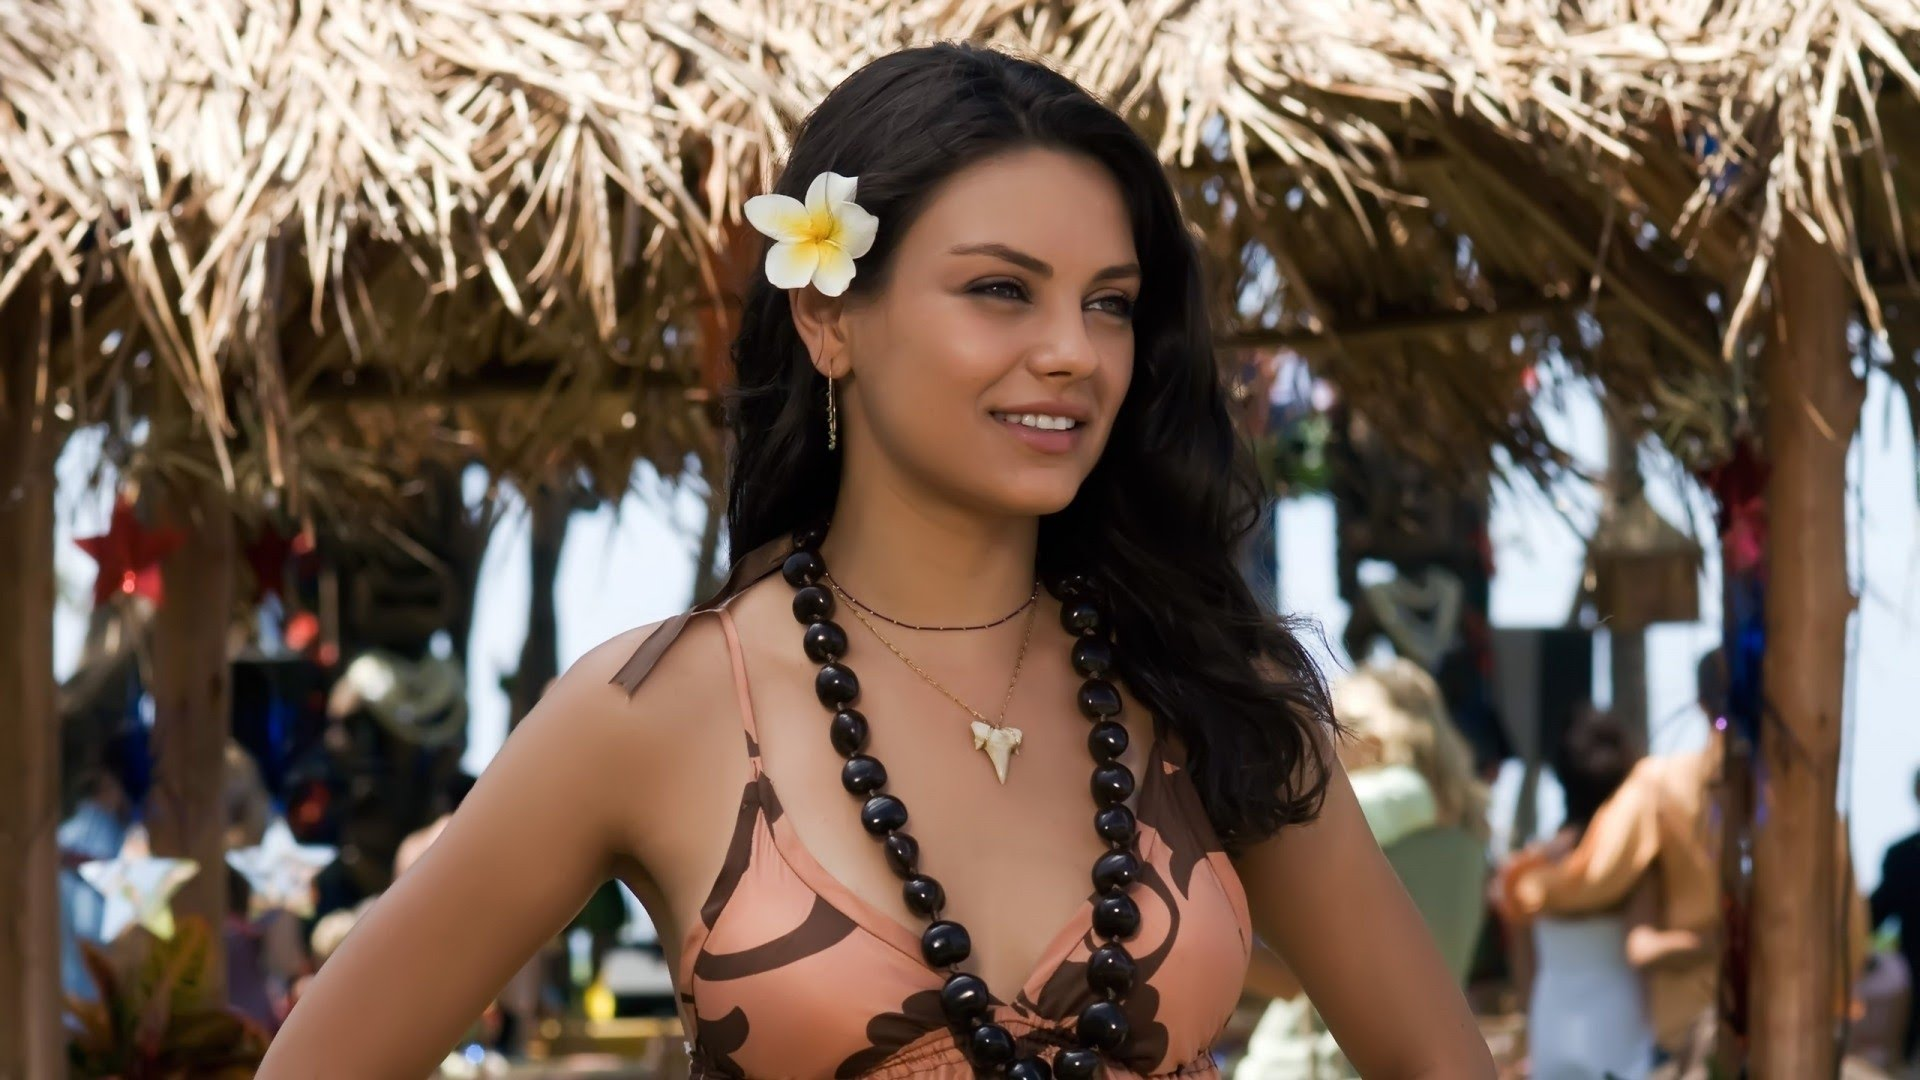 Mila Kunis tropics - Mila Kunis Net Worth, Movies, Family, Husband, Pictures and Wallpapers